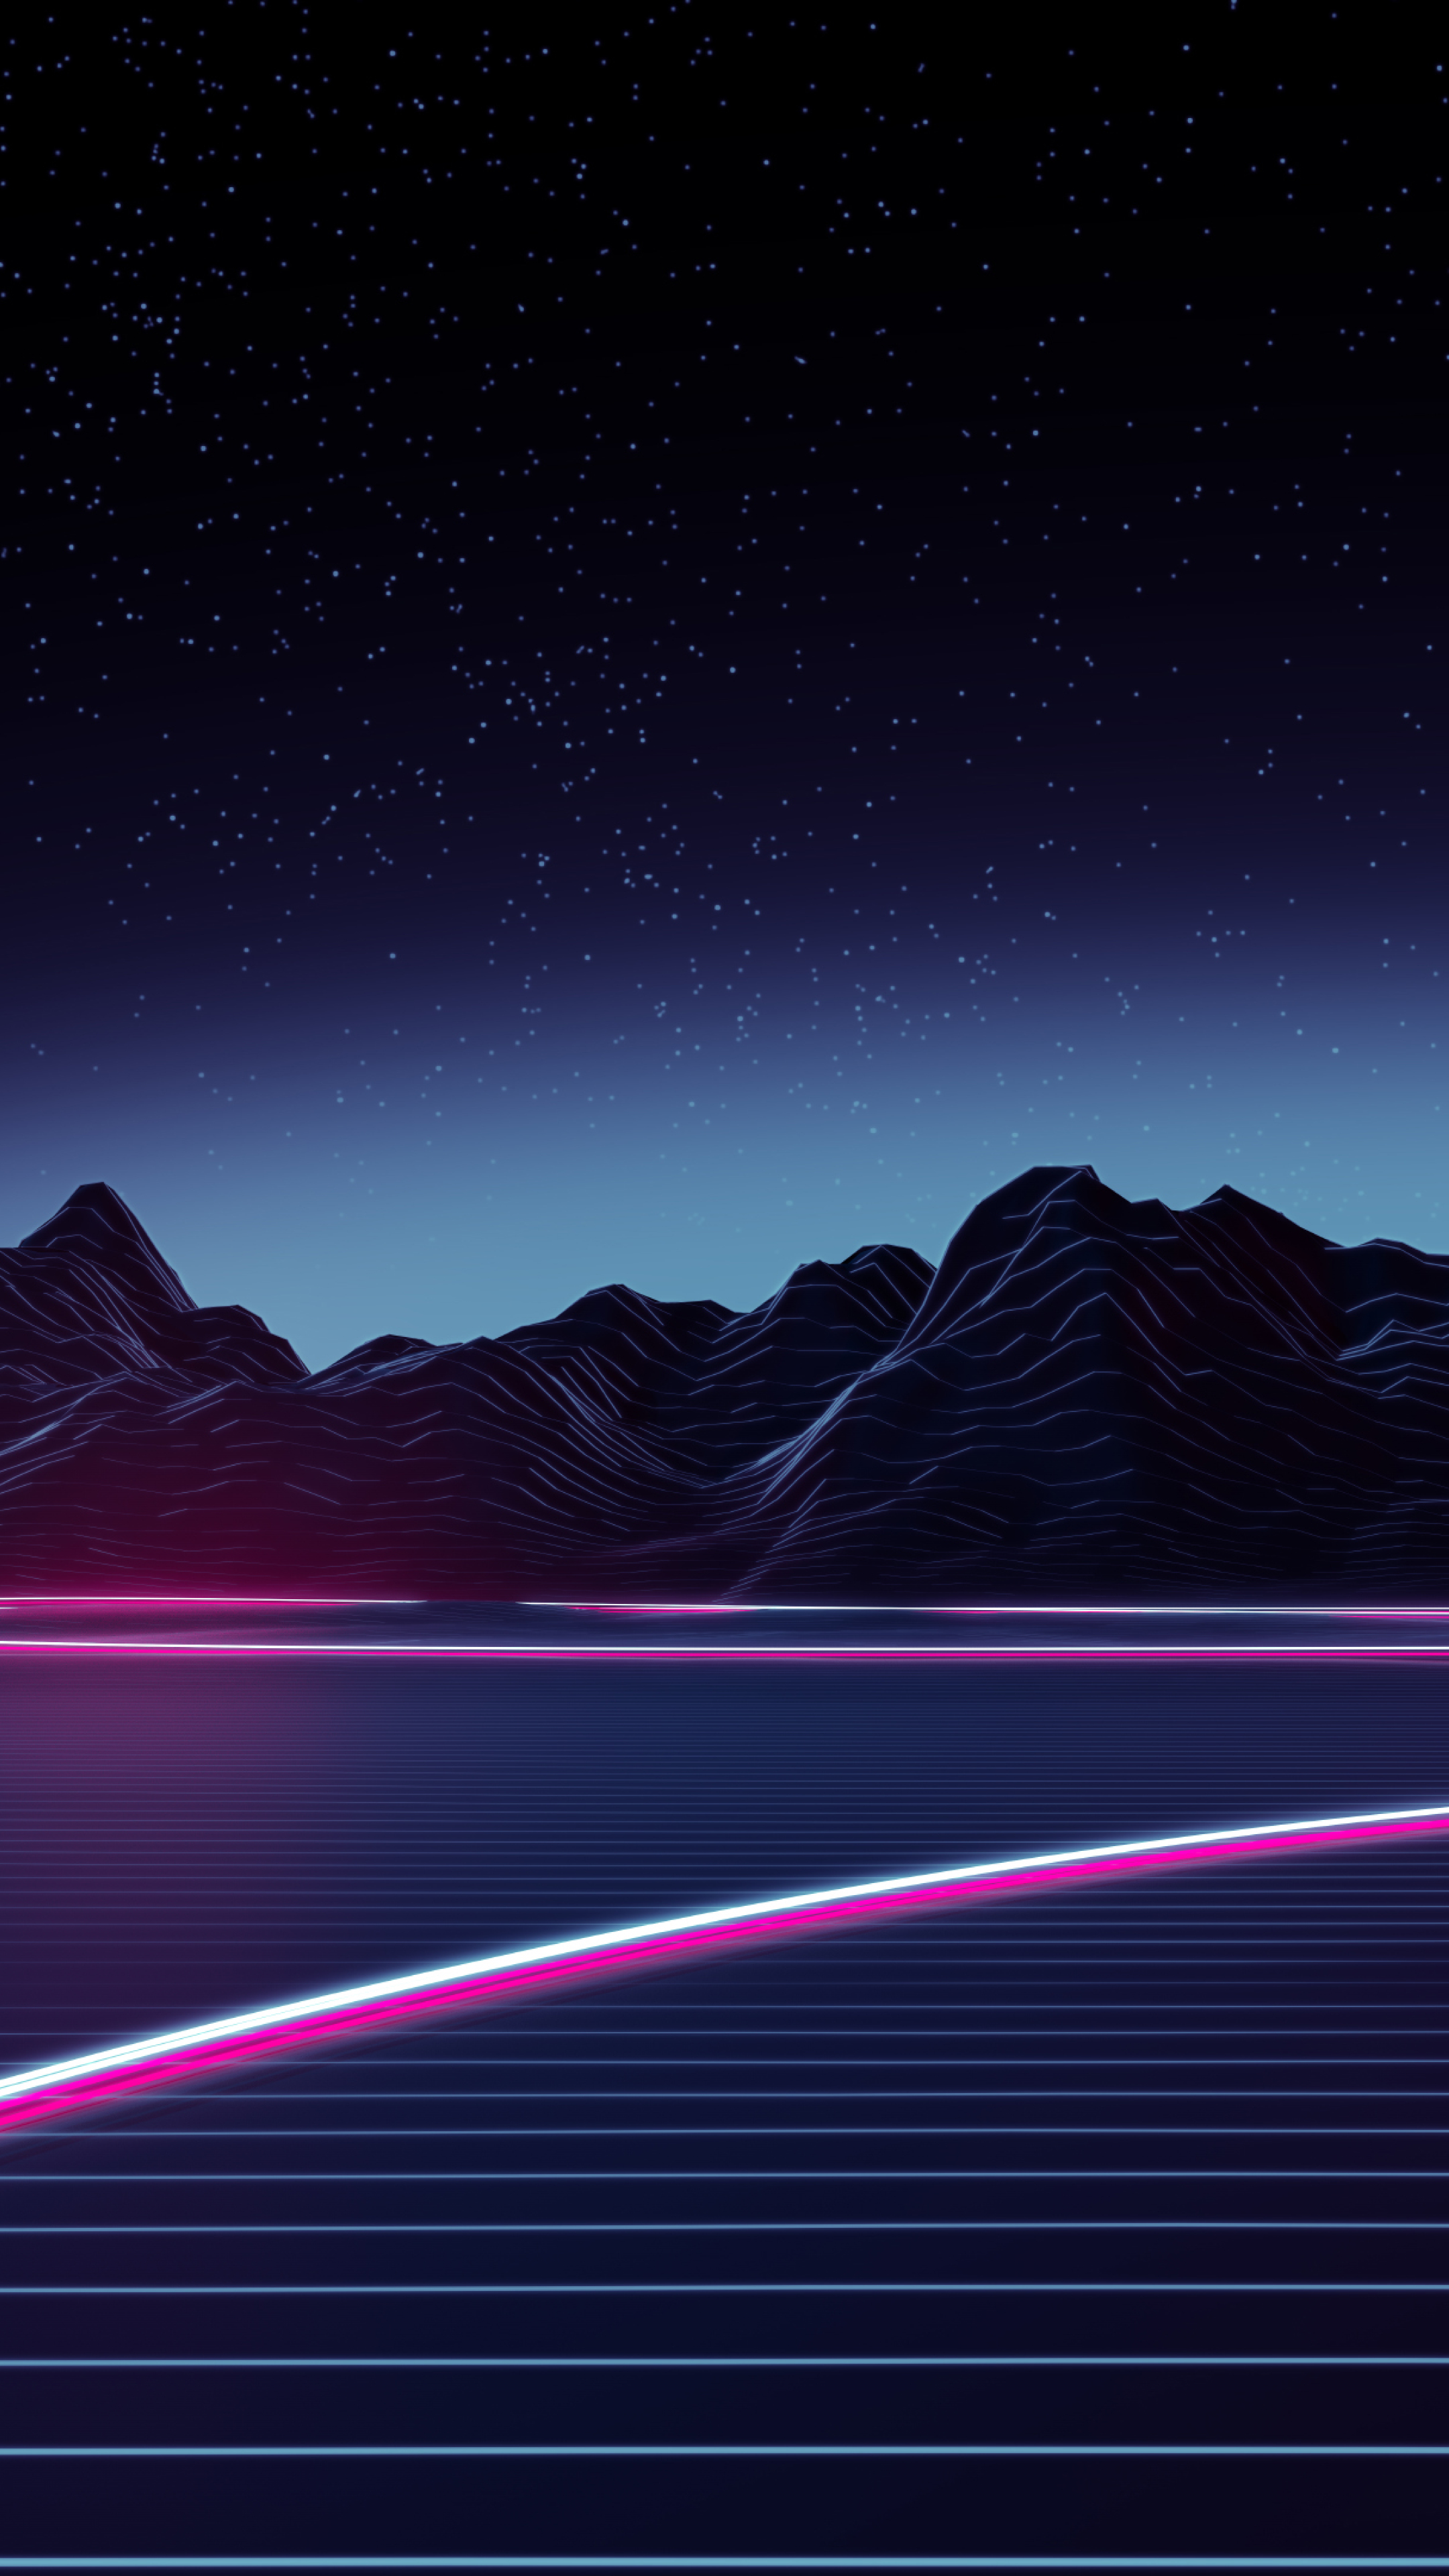 Download neon highway 2160x3840 resolution hd 4k wallpaper - 2160x3840 wallpaper ...